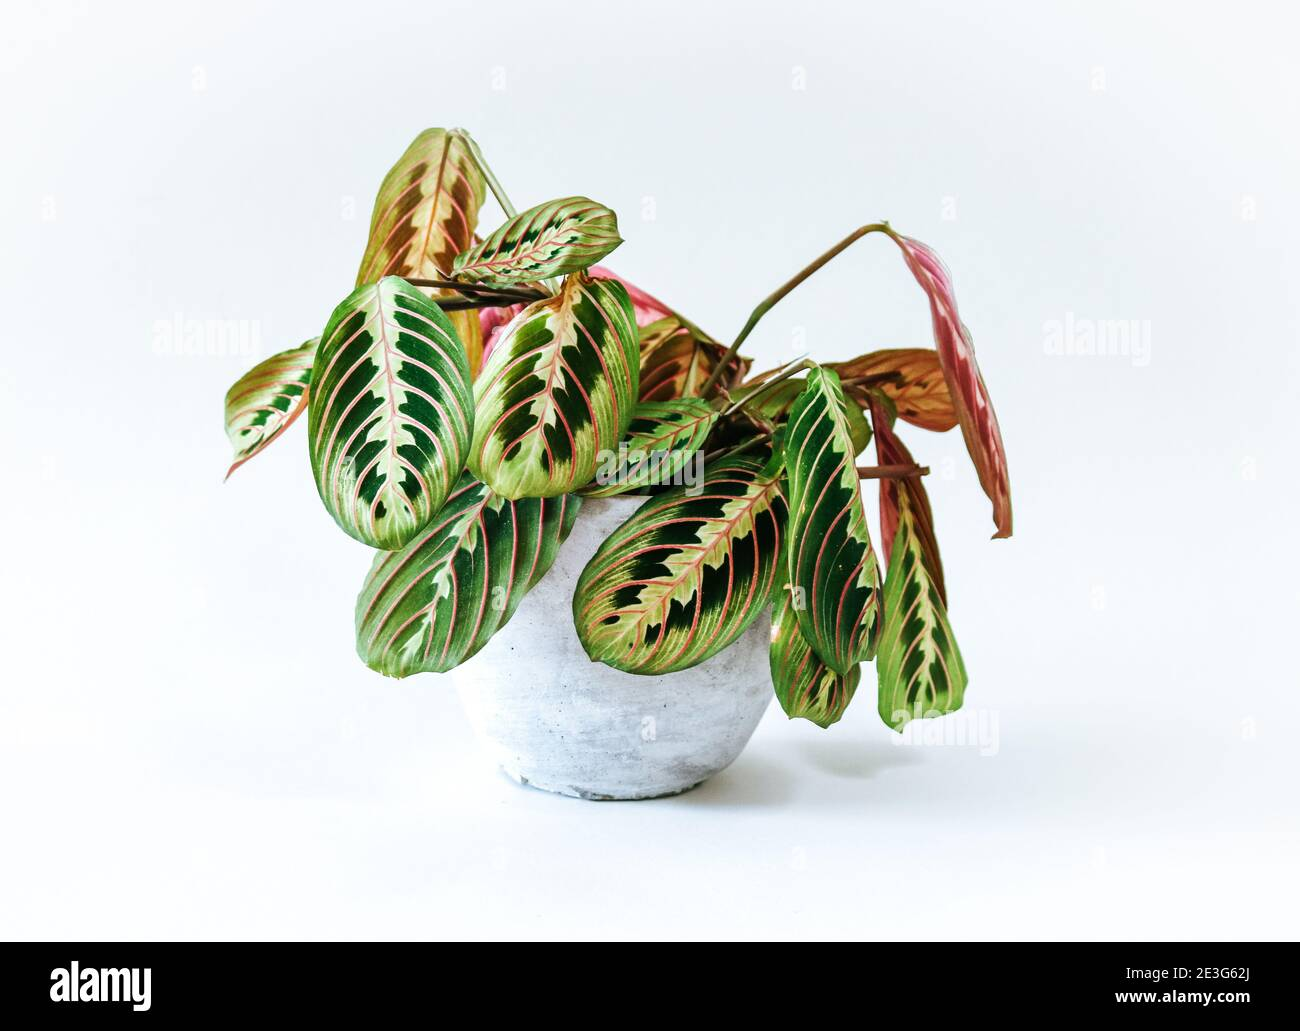 Prayer Plant High Resolution Stock Photography And Images Alamy